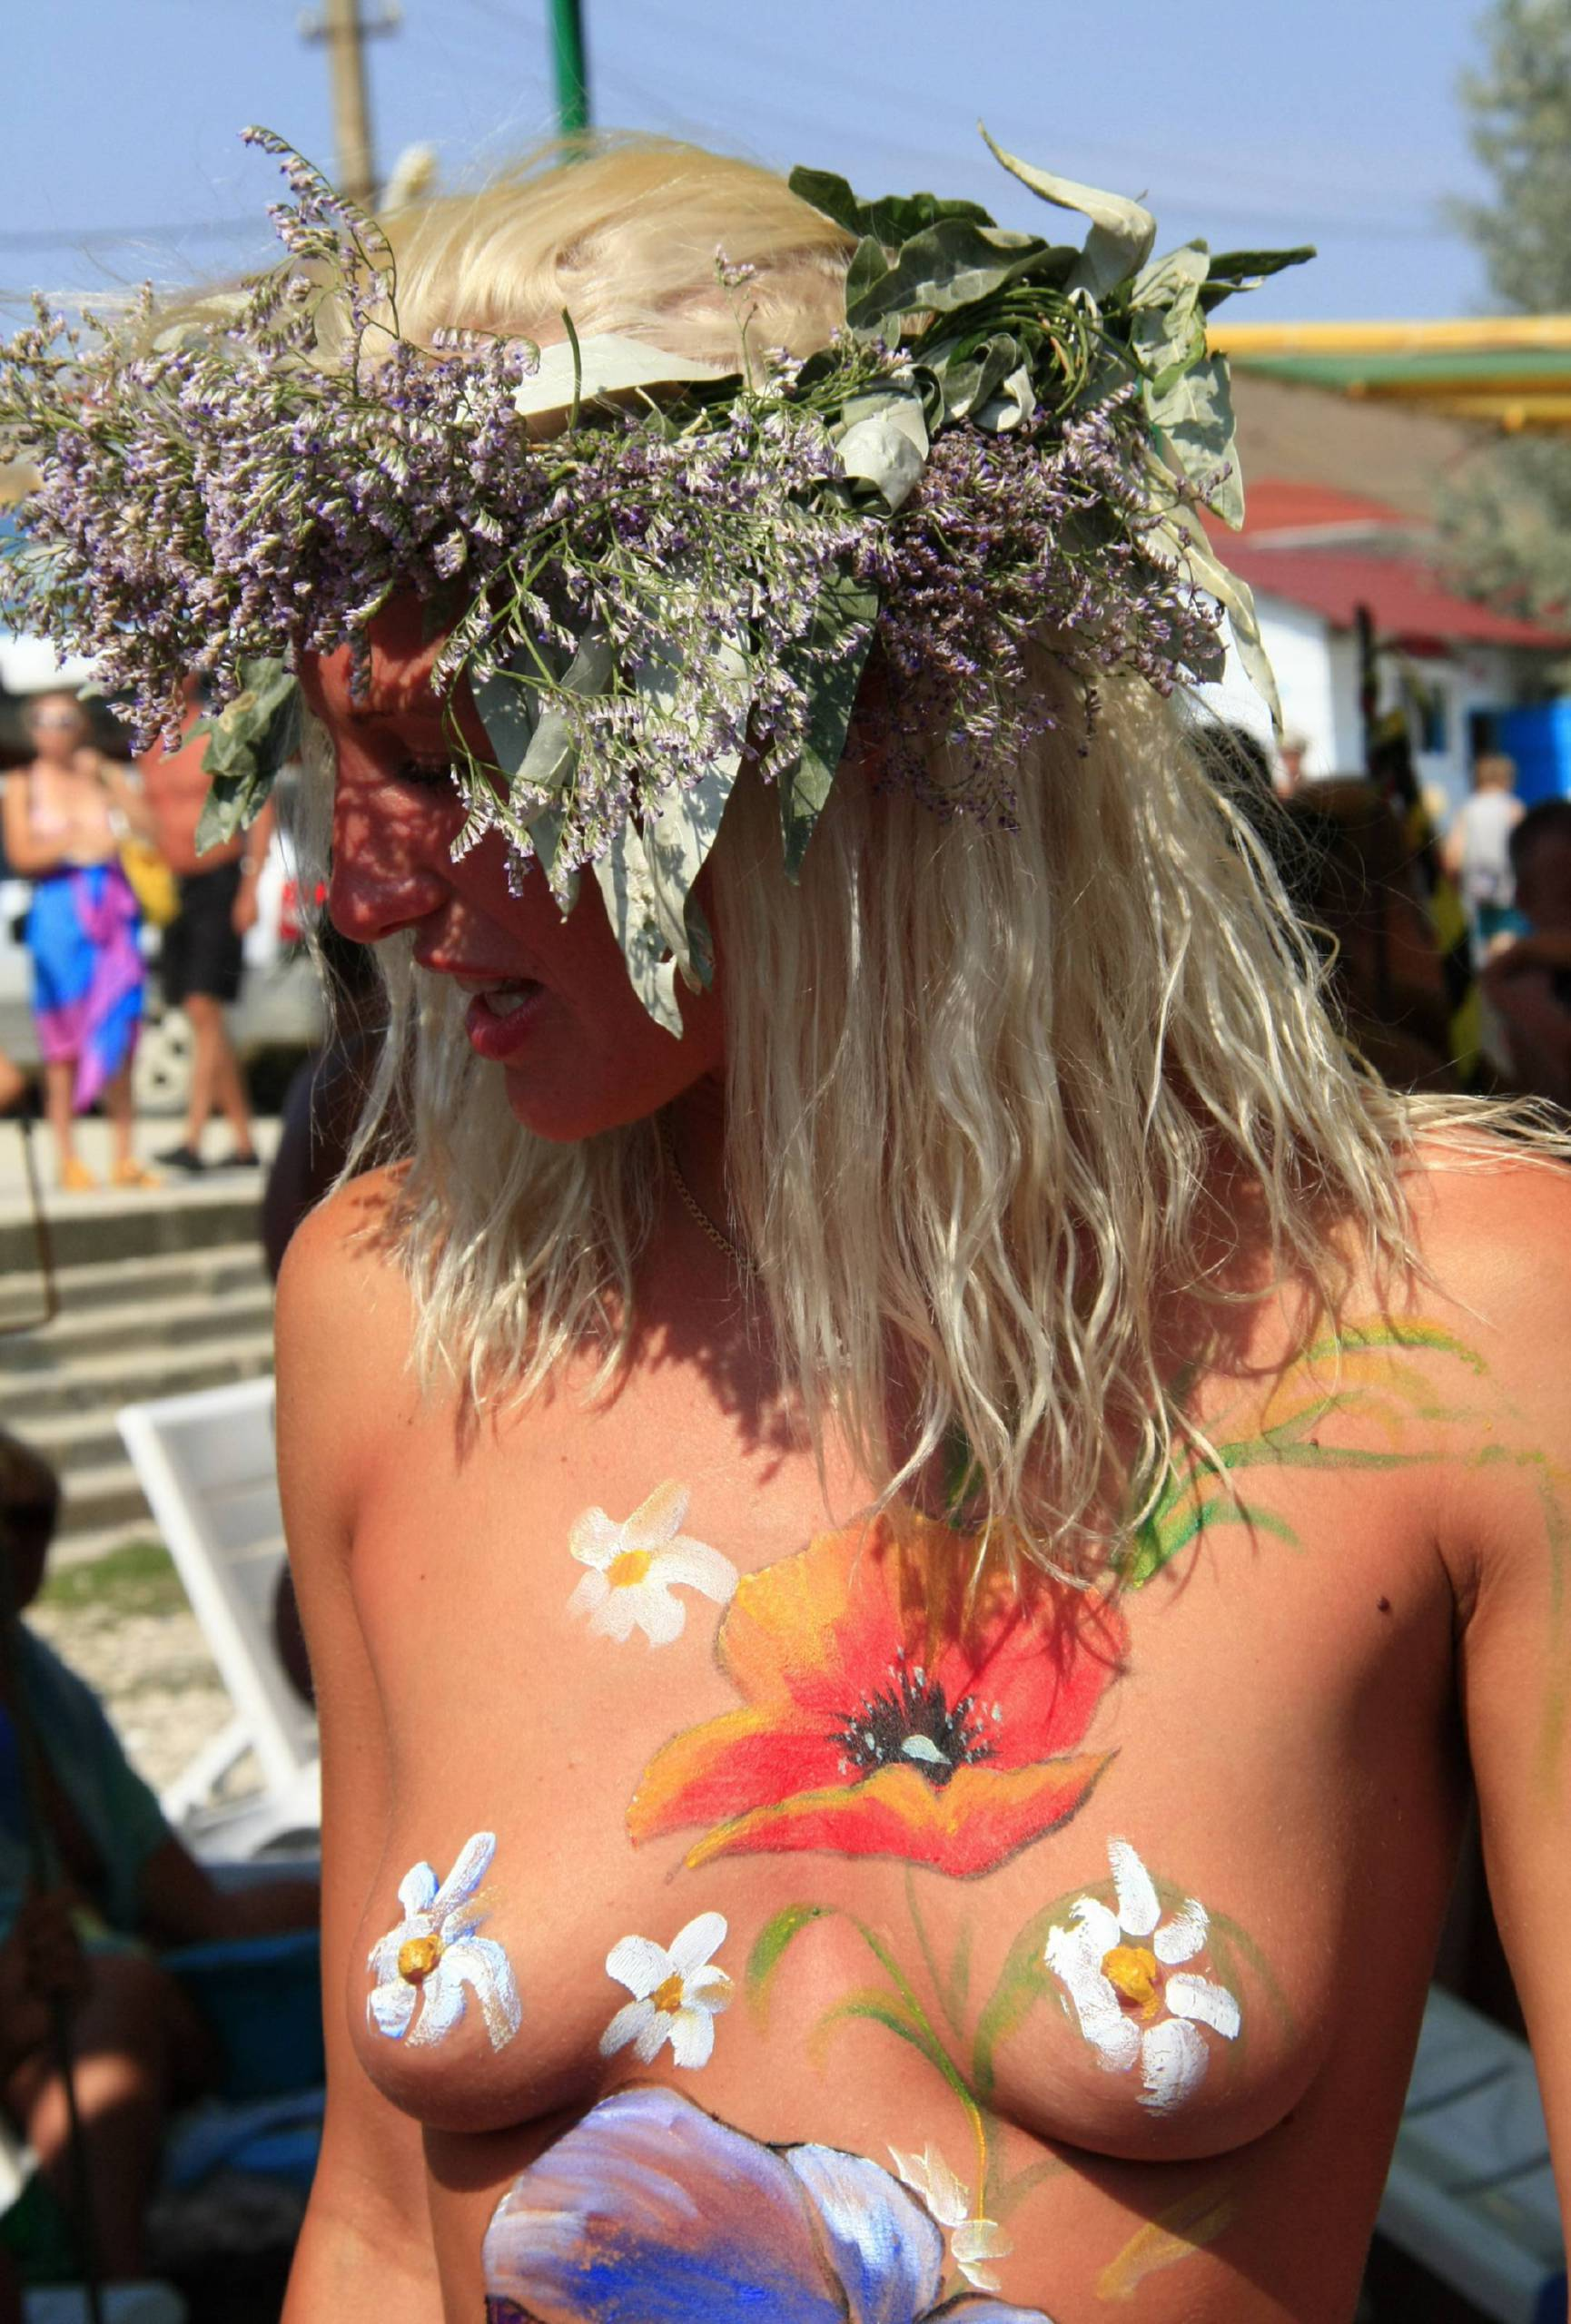 Nudist Photos Festival His King and Queens - 2